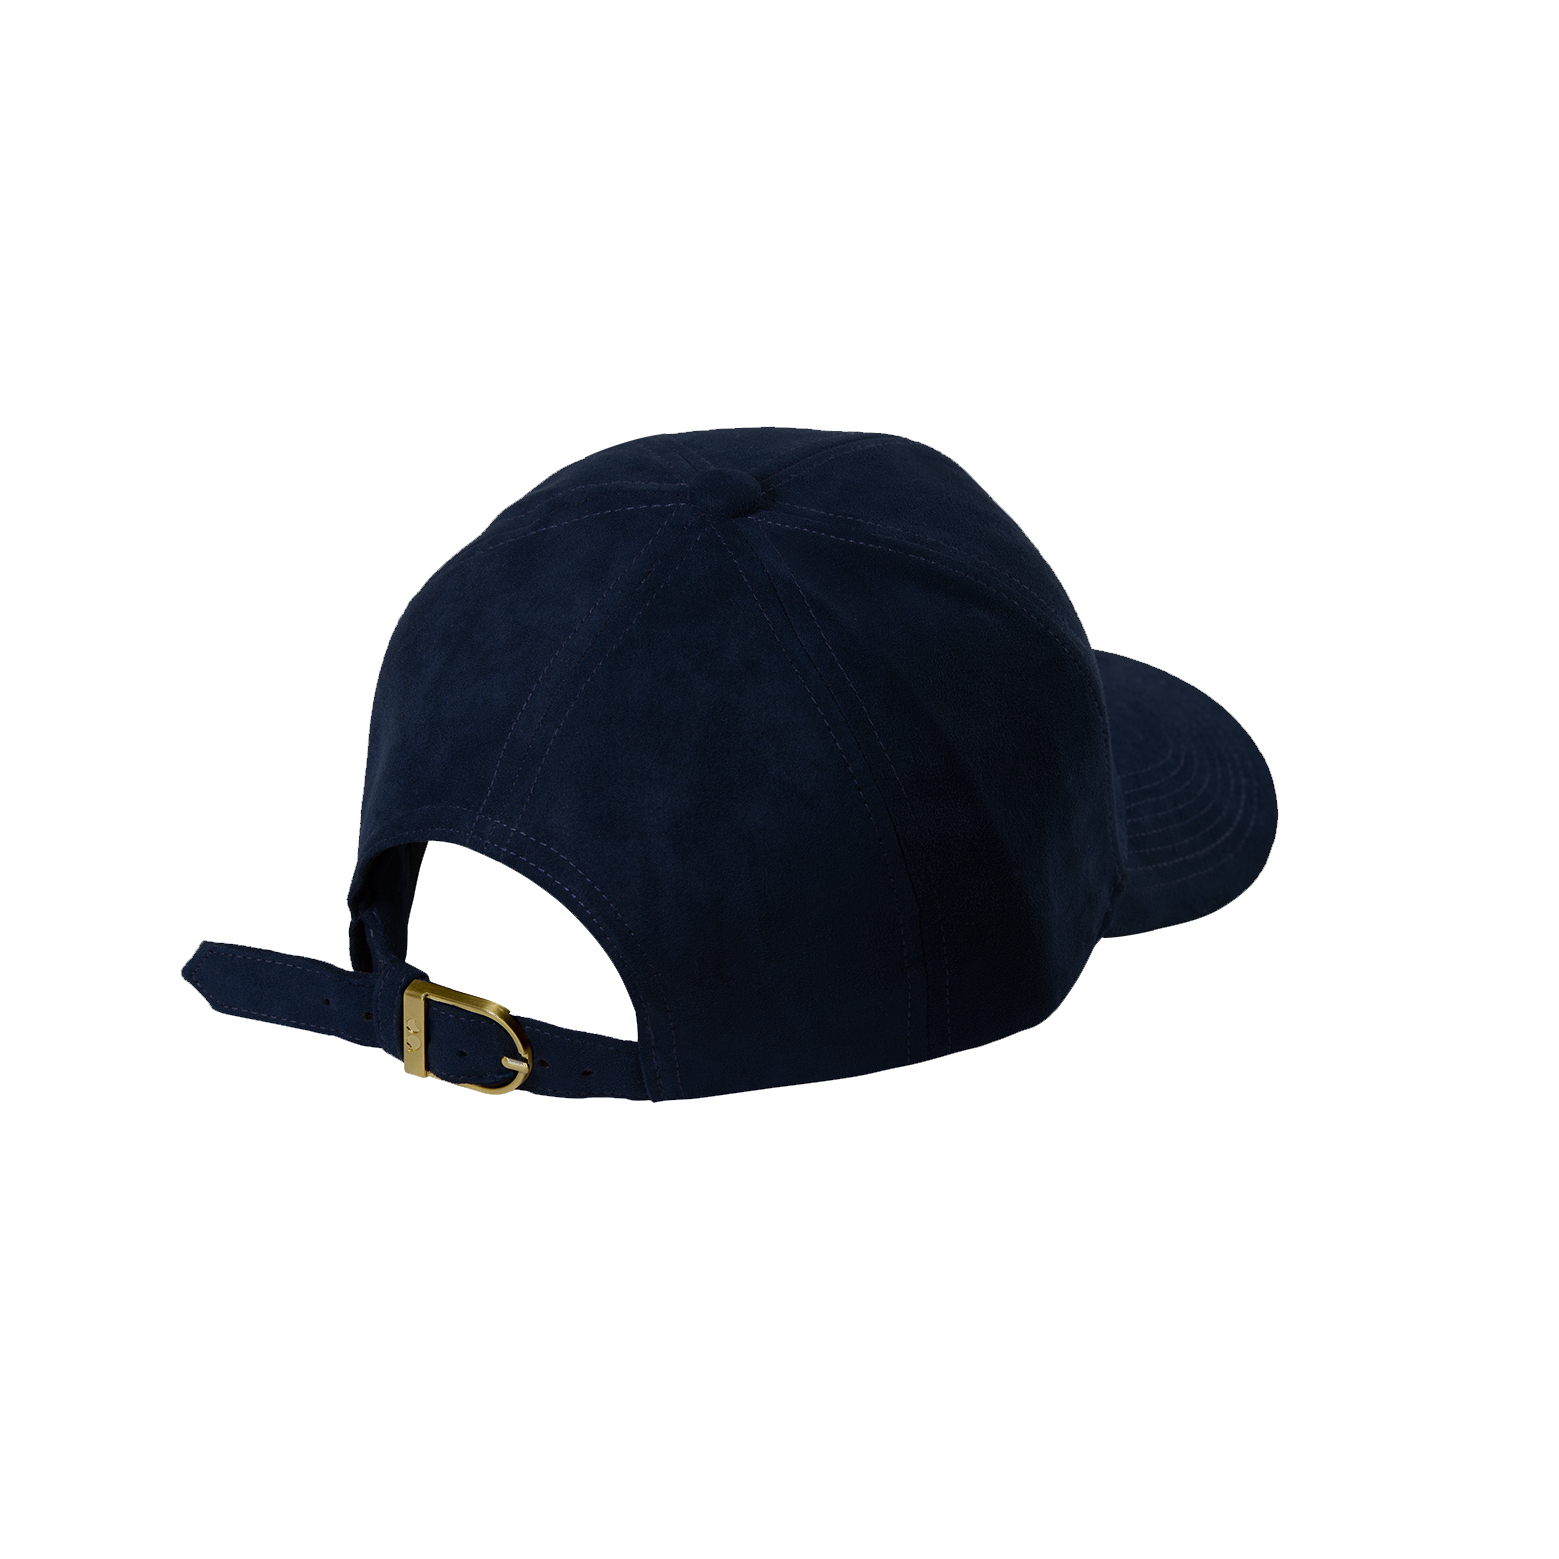 BASEBALL CAP NAVY BLUE SUEDE GOLD BACK SIDE